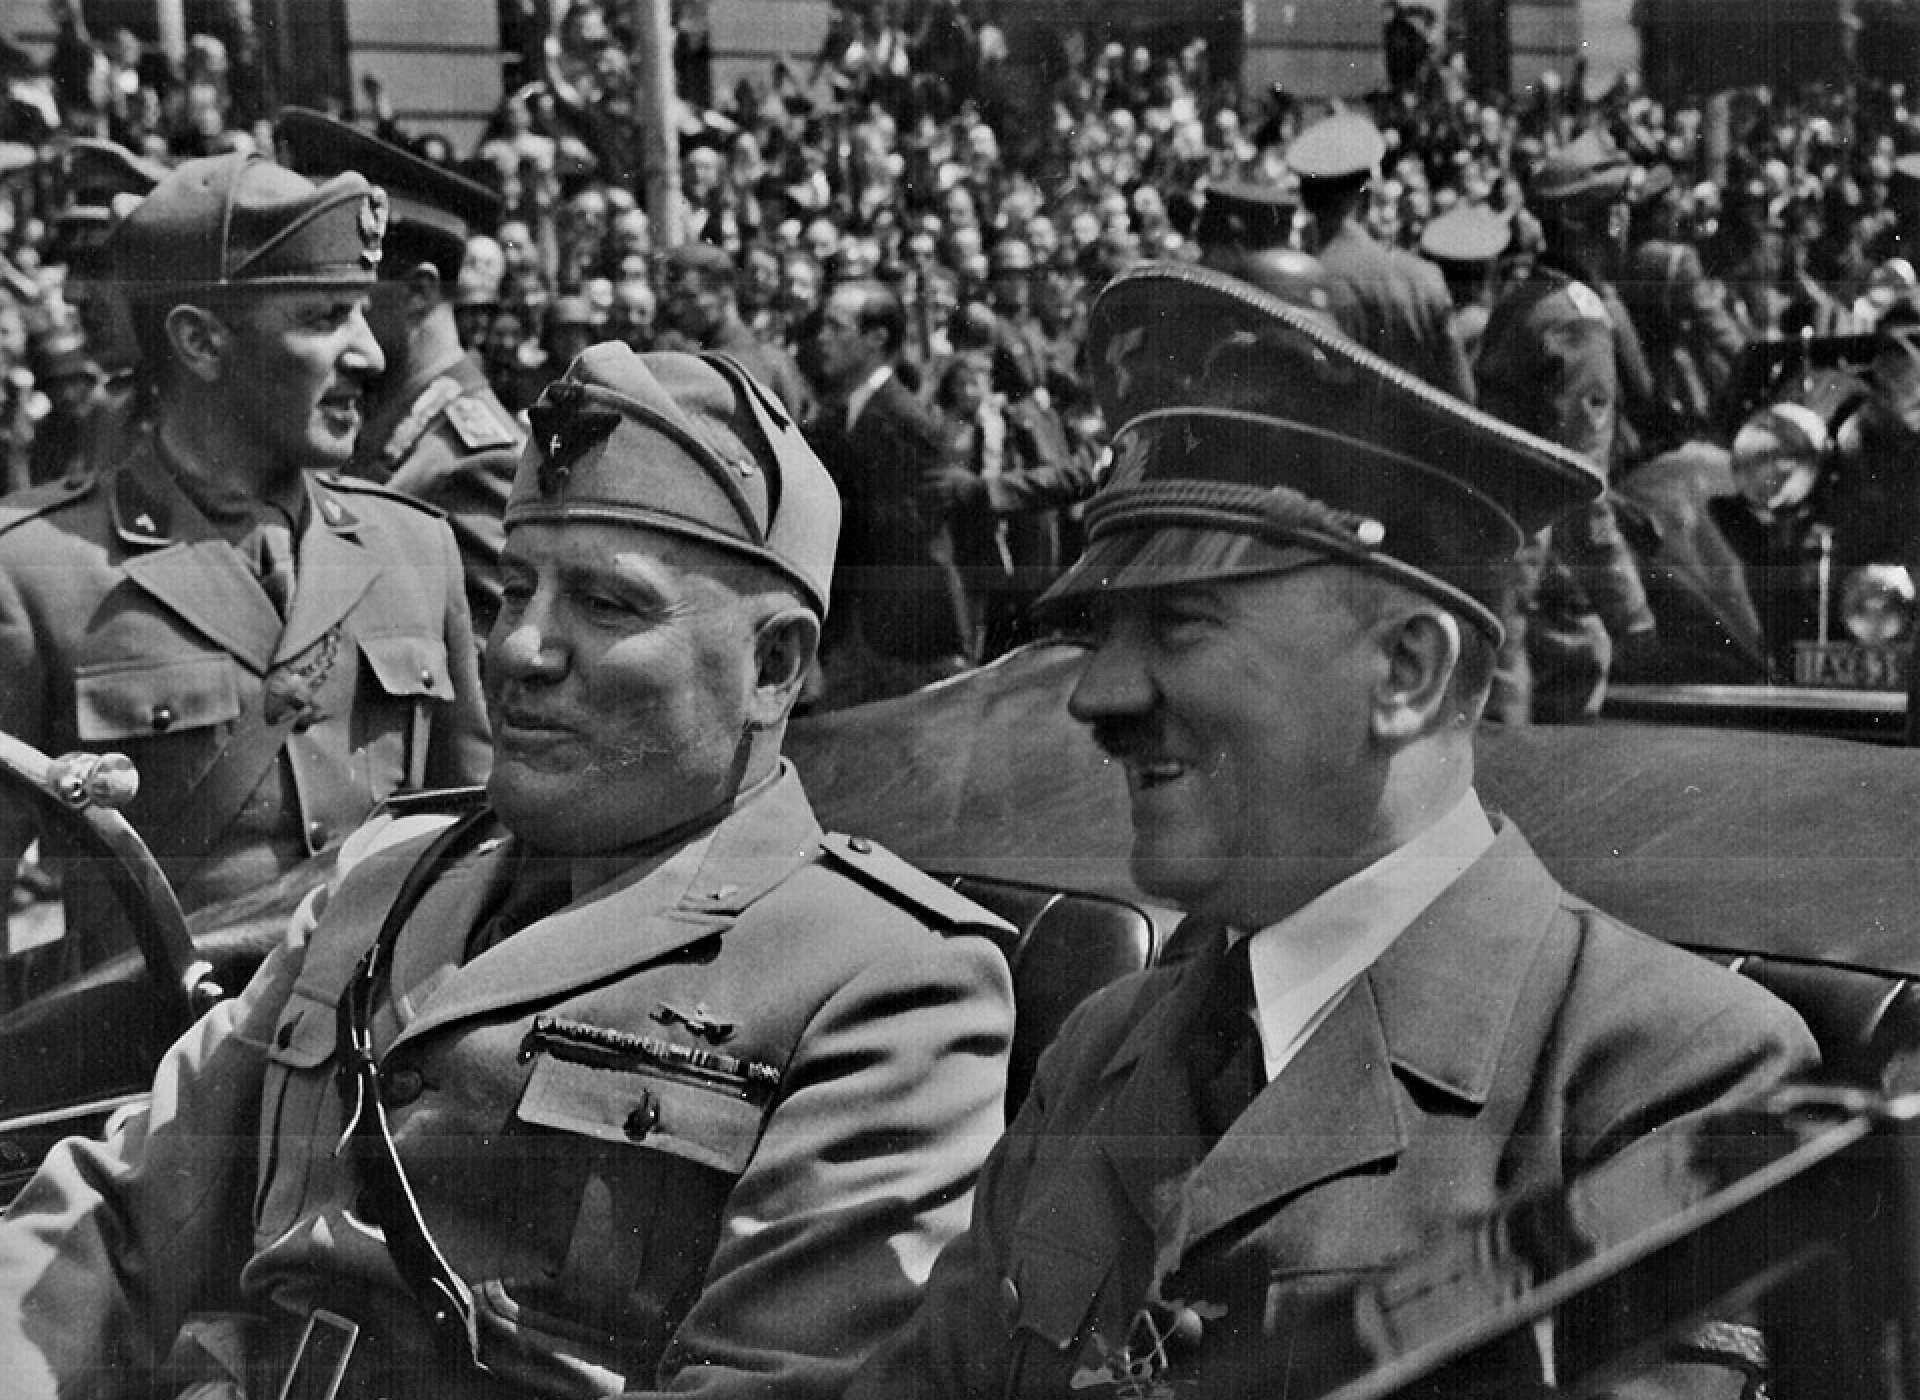 The Duce and the Führer.